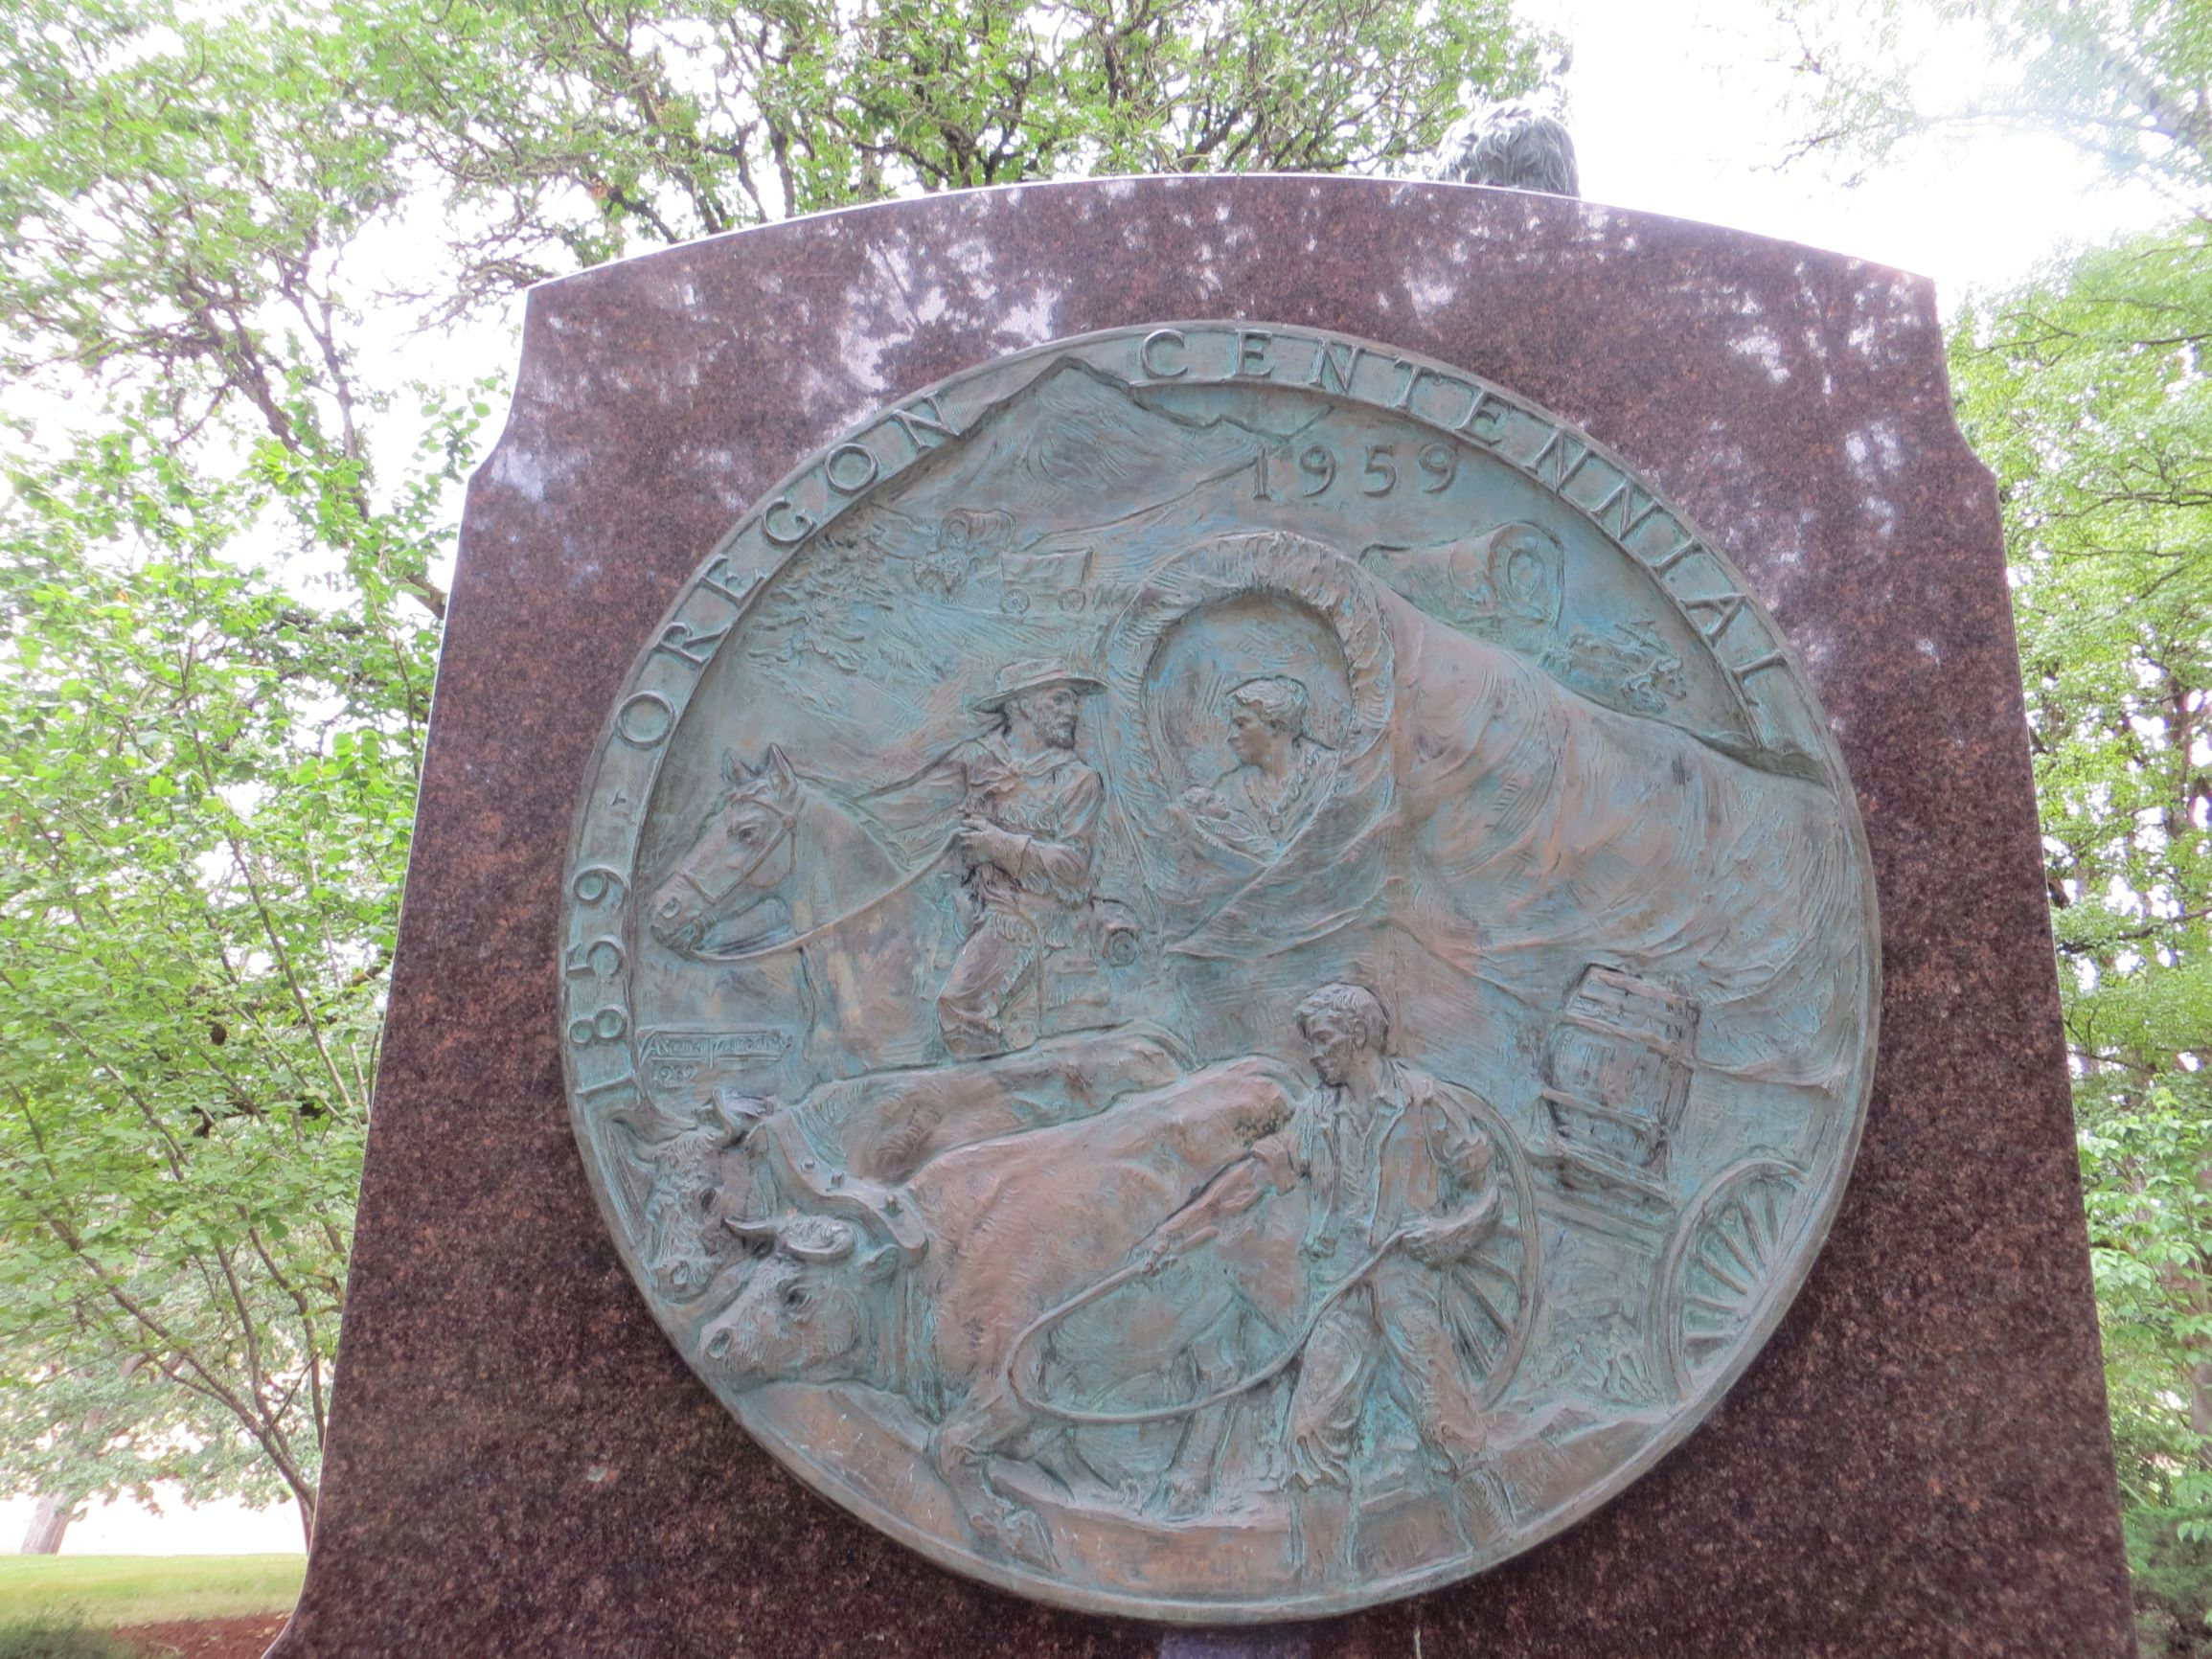 Oregon Centennial medallion on reverse of monument. Photo by Cynthia Prescott.